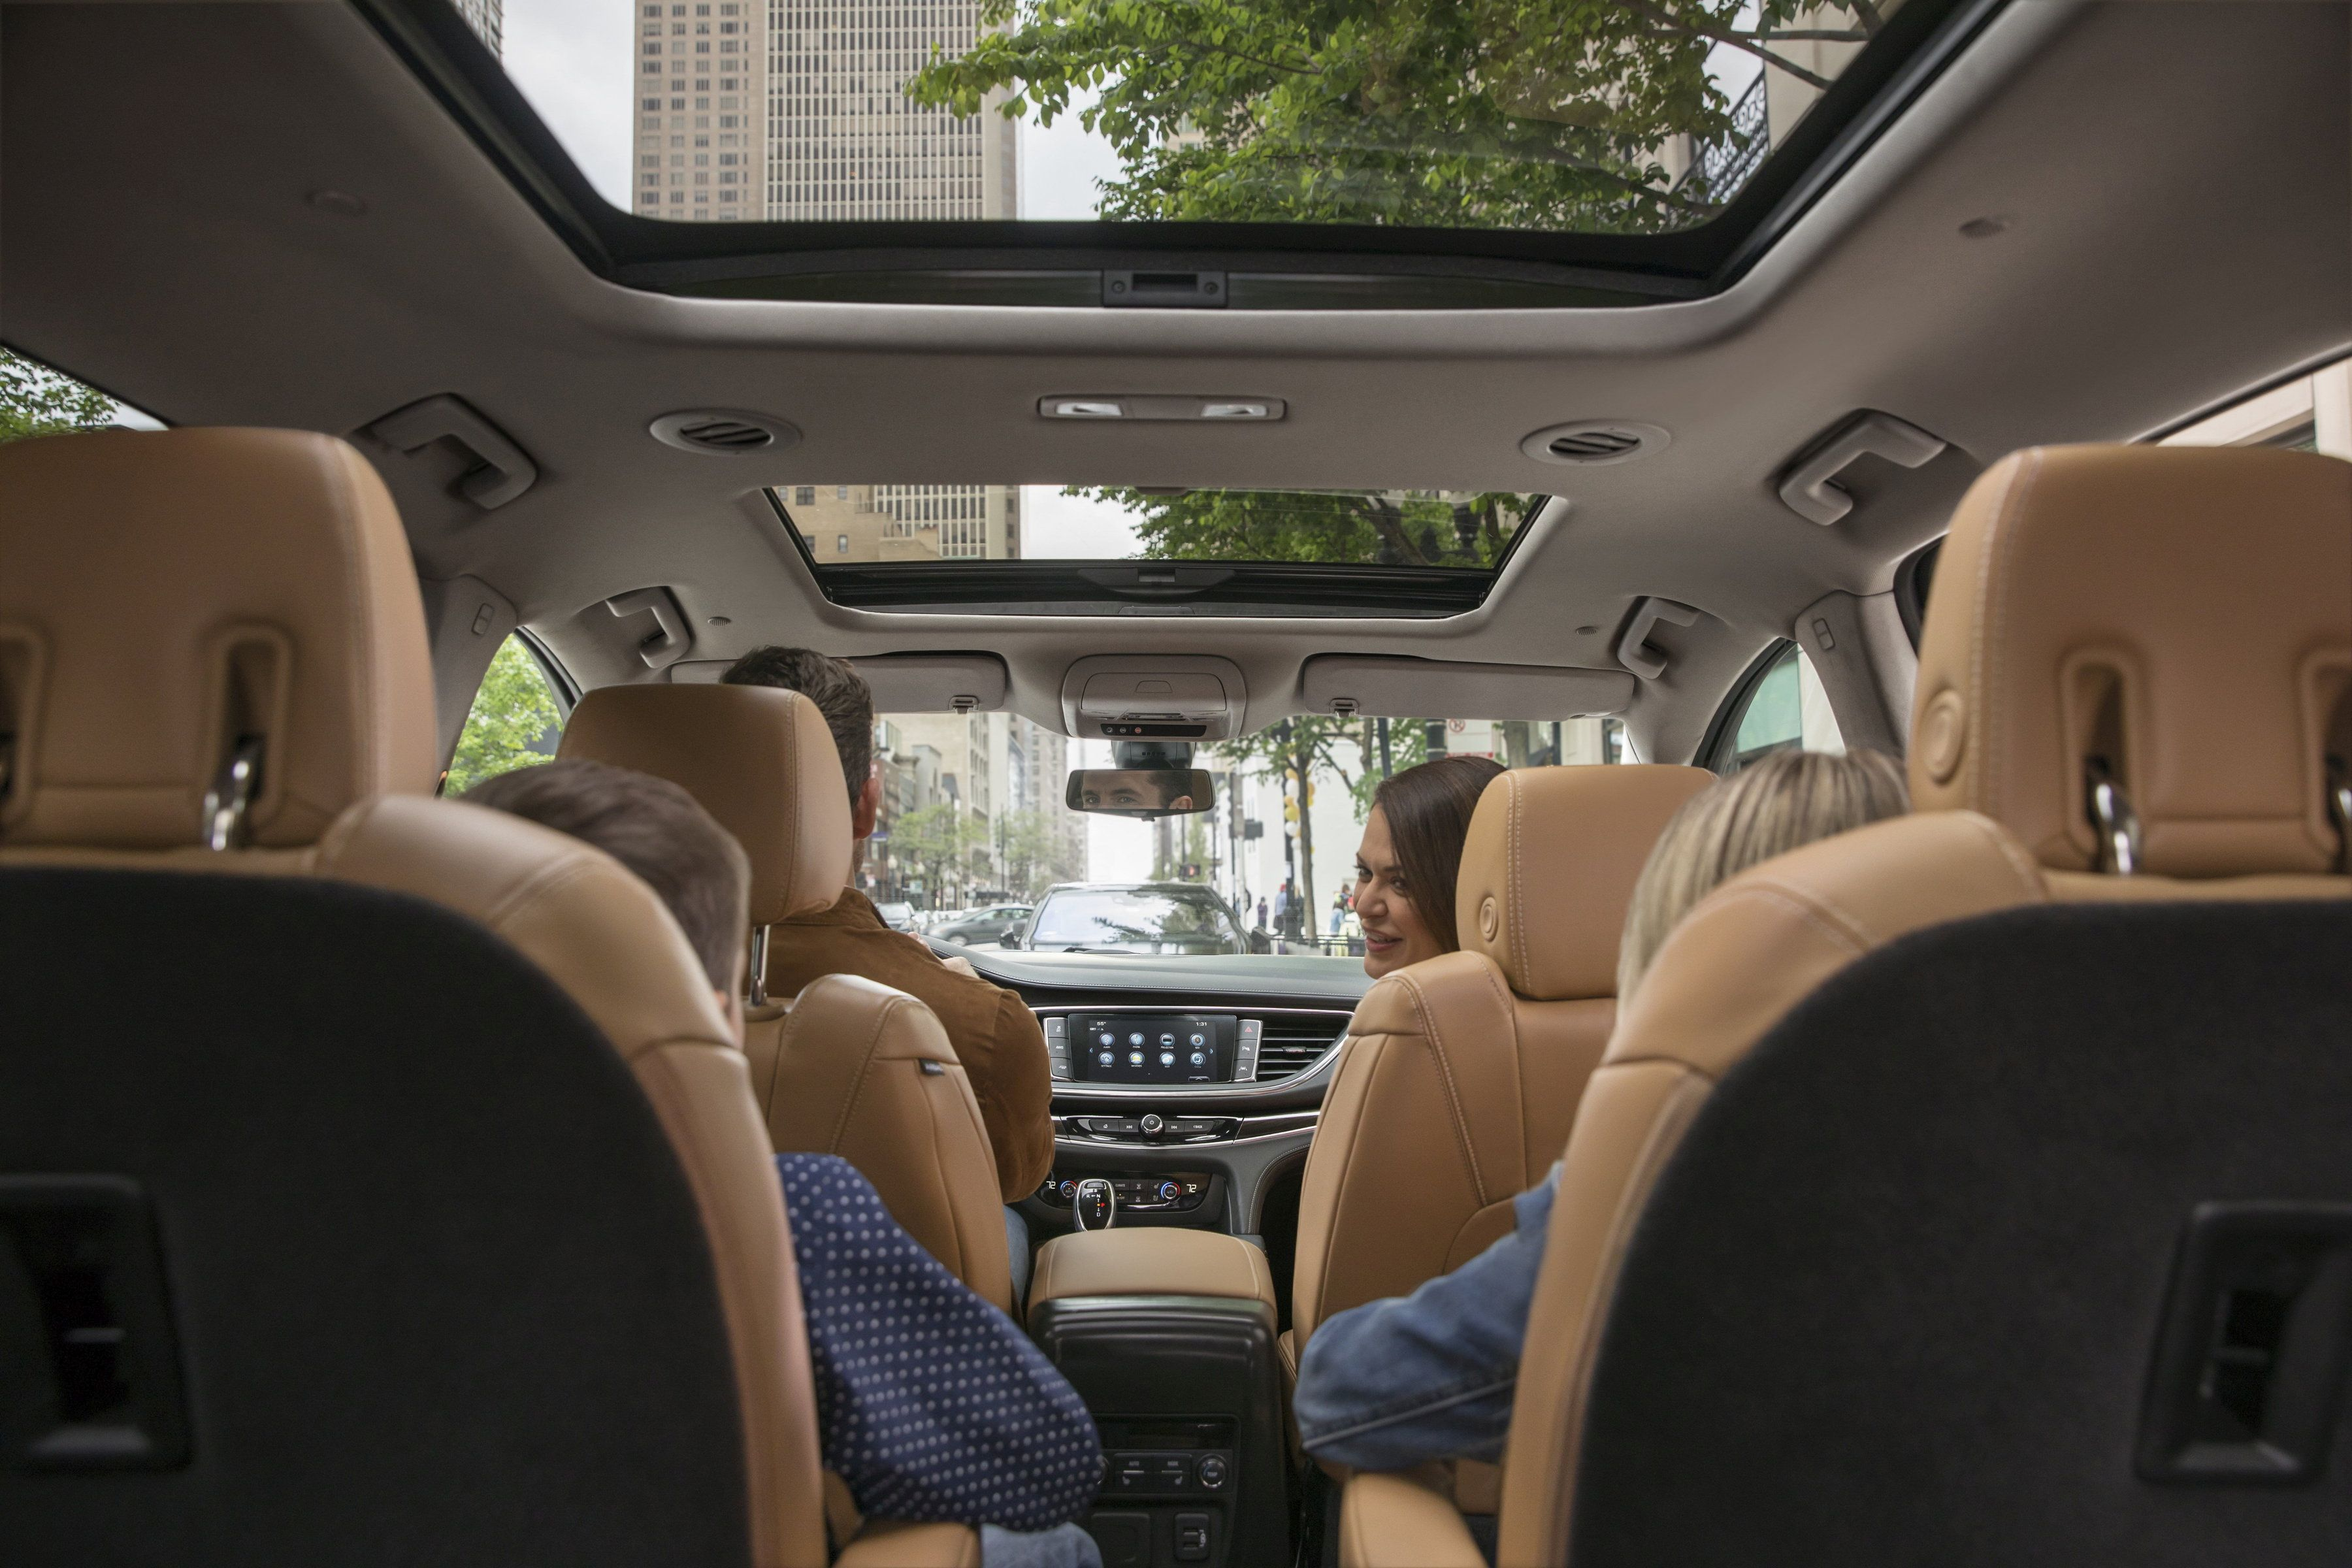 consumer side for cr cars review enclave room improvement buick suvs hero reports